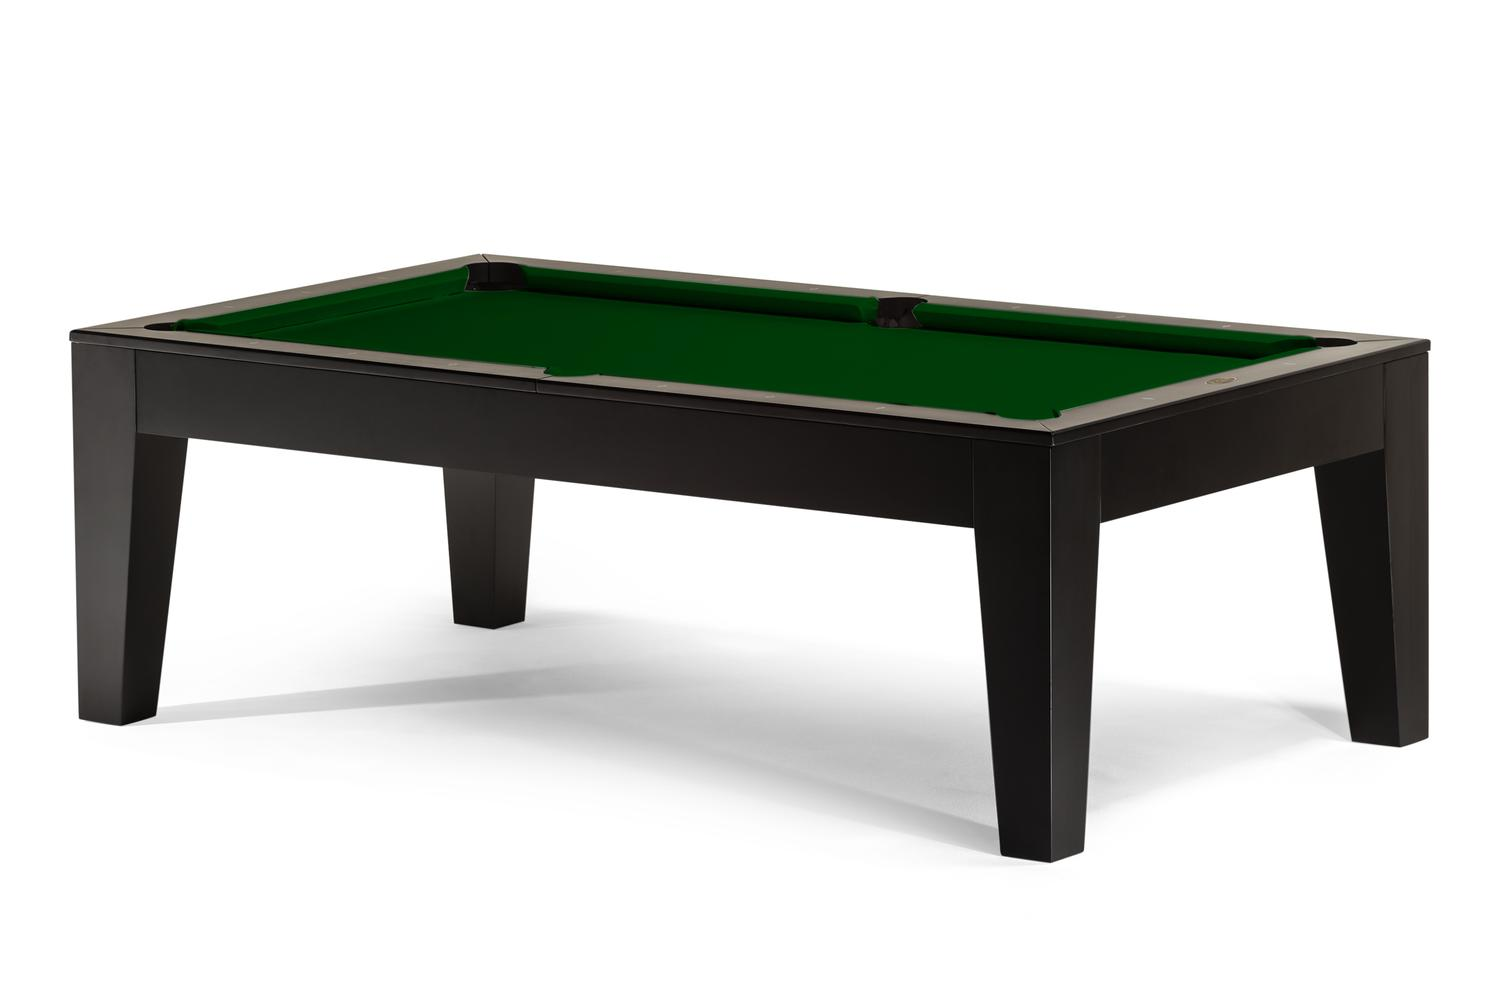 Spencer marston monaco dining pool table pooltablesdirect geotapseo Gallery